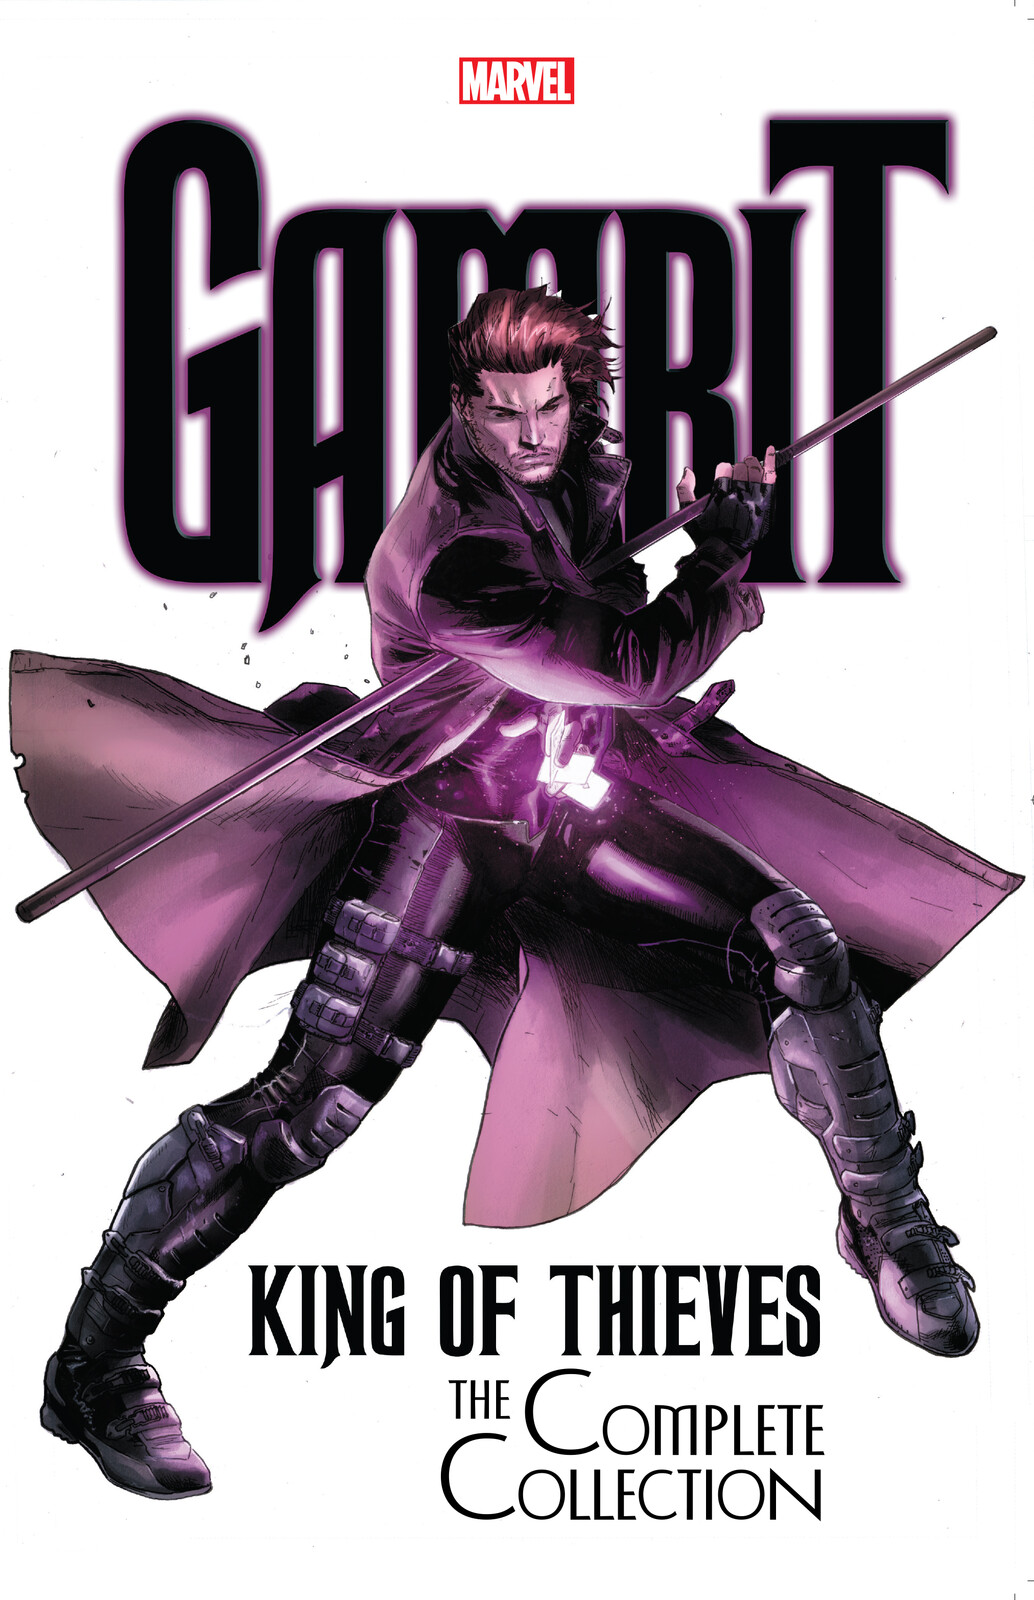 Design and Layout for Marvel's Gambit: King of Thieves